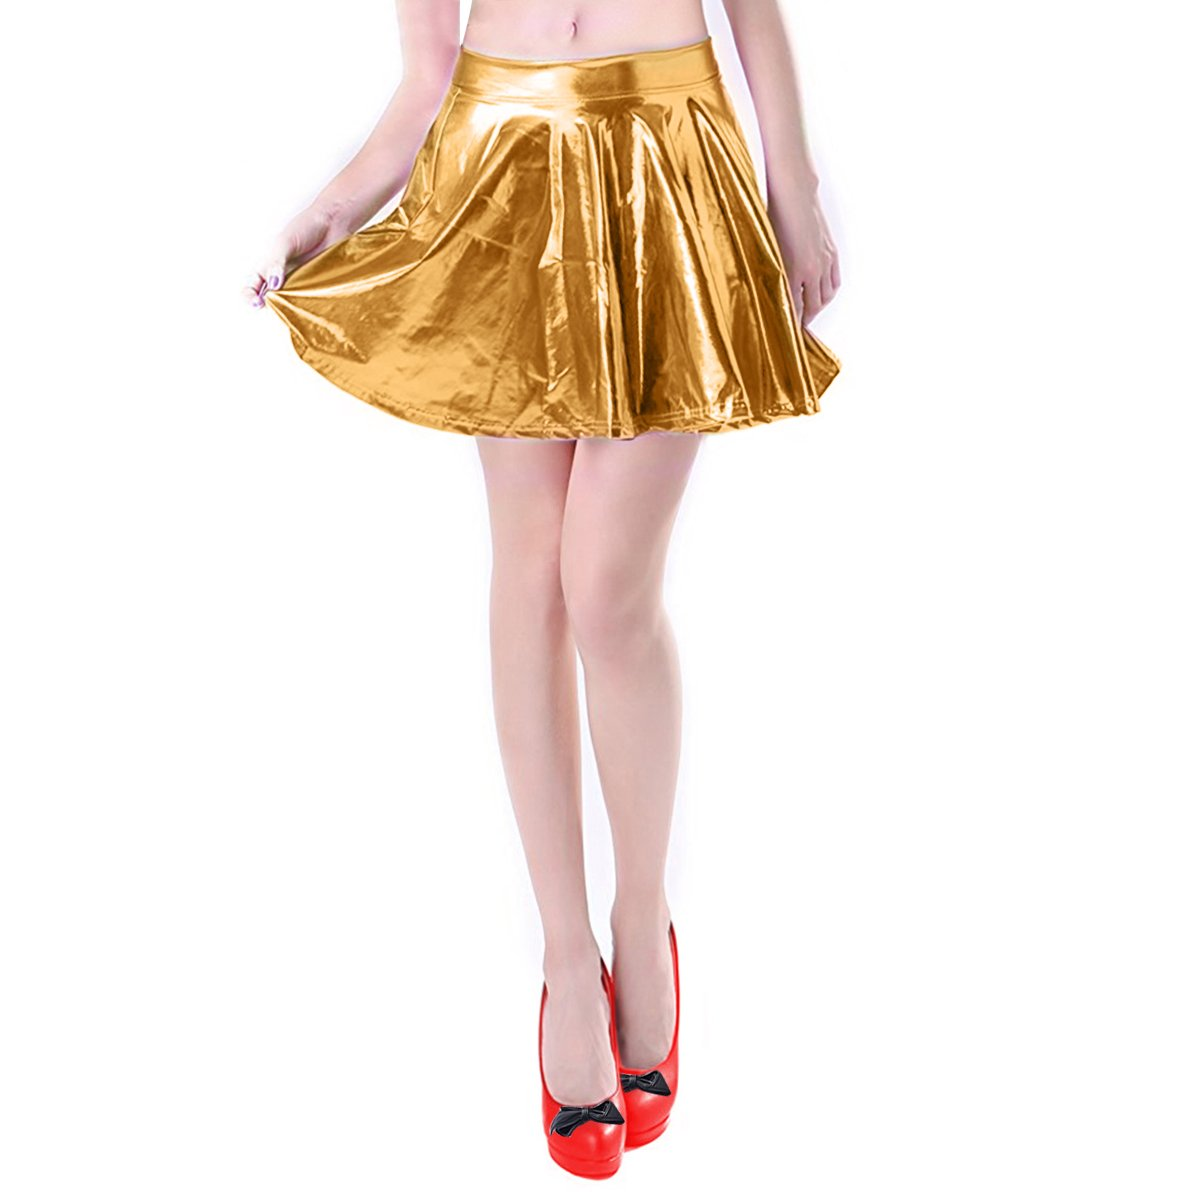 Mother's Day Gifts Pleated Skirt Short Shiny Liquid Metallic Flared Skater Skirt Golden, Small